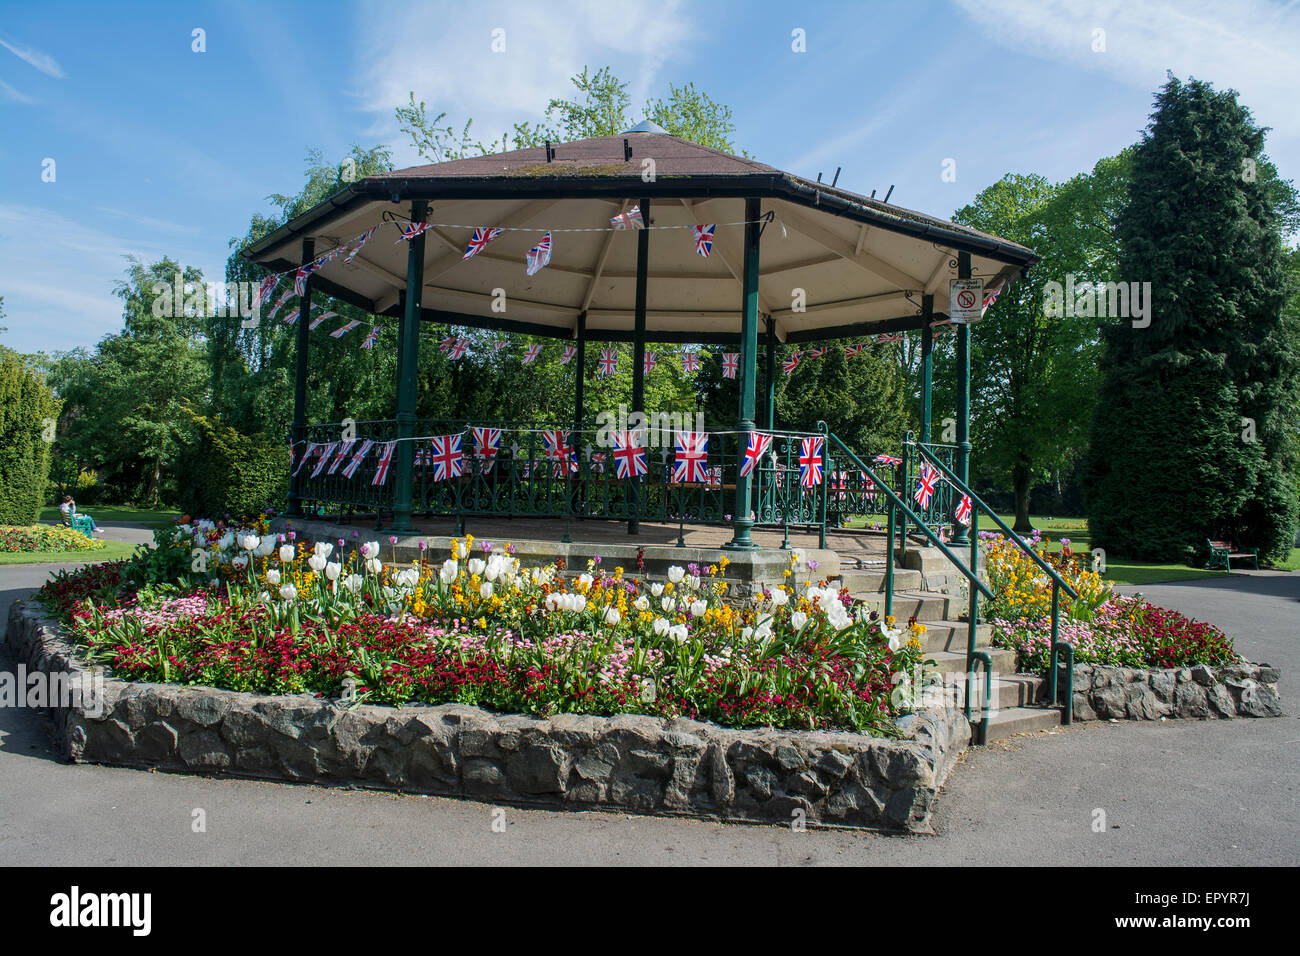 Bandstand, Queens Park Loughborough, Leicestershire, England, UK - Stock Image